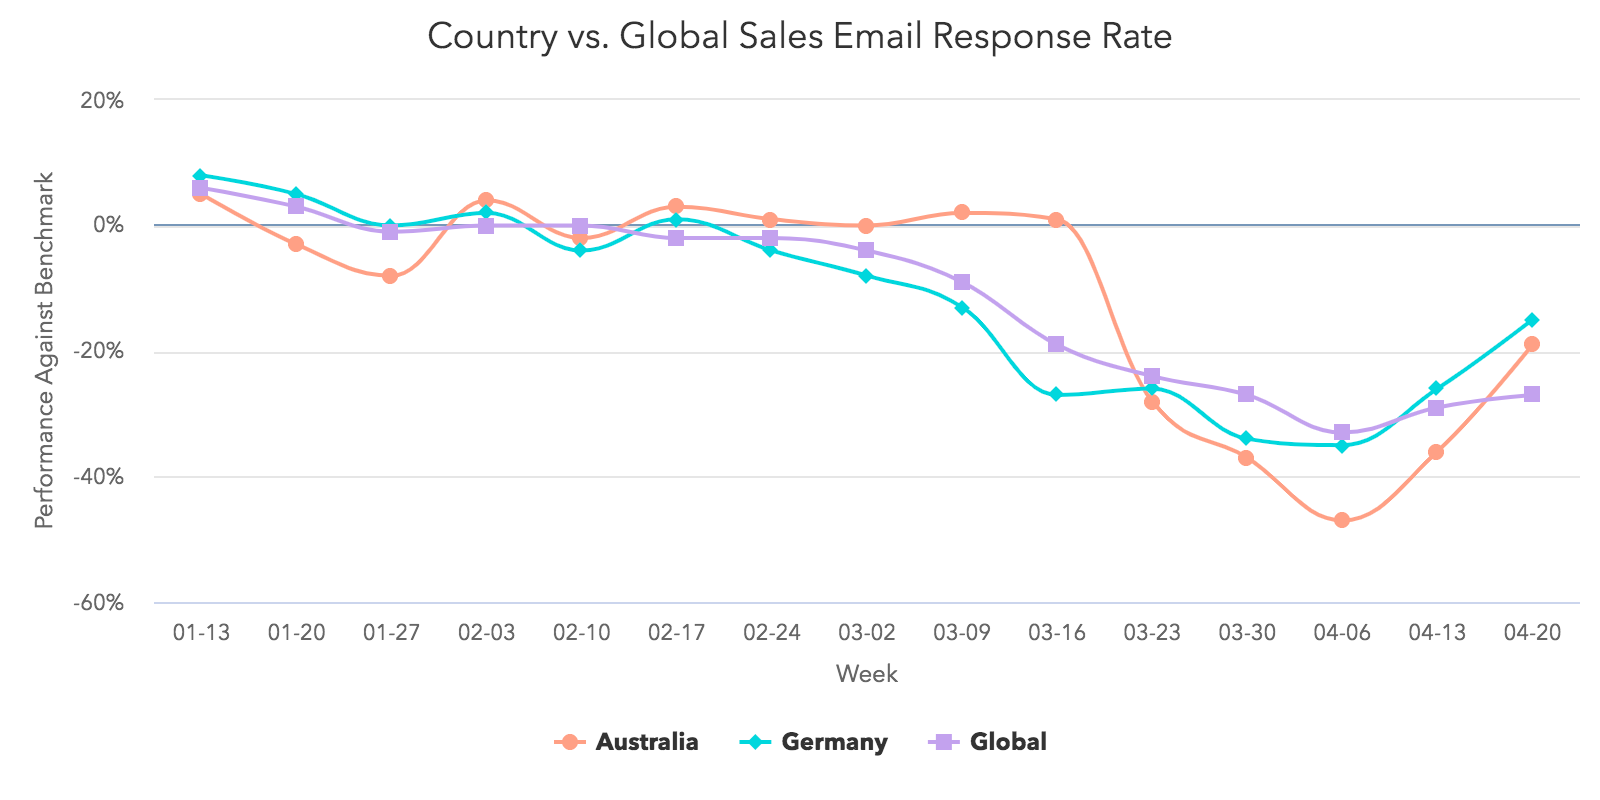 Land vs Global: Vertriebs-E-Mails Antwortquote